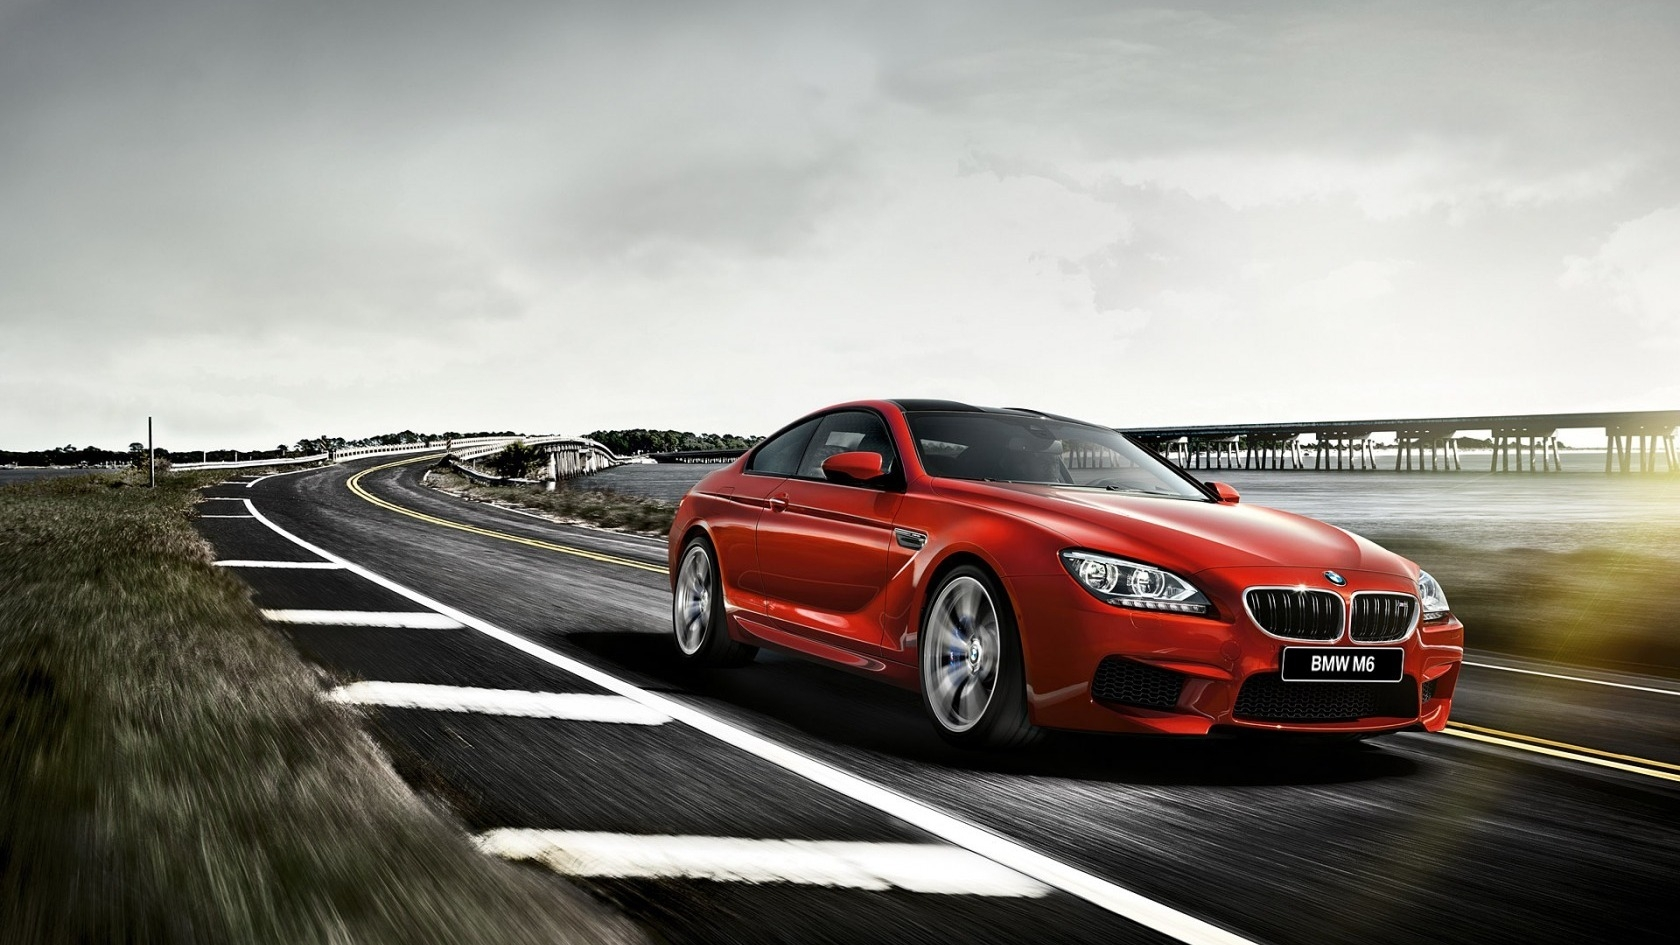 Girls Of The Wilds Wallpaper Red Bmw M6 F13 Coupe On Road Gorgeous Car